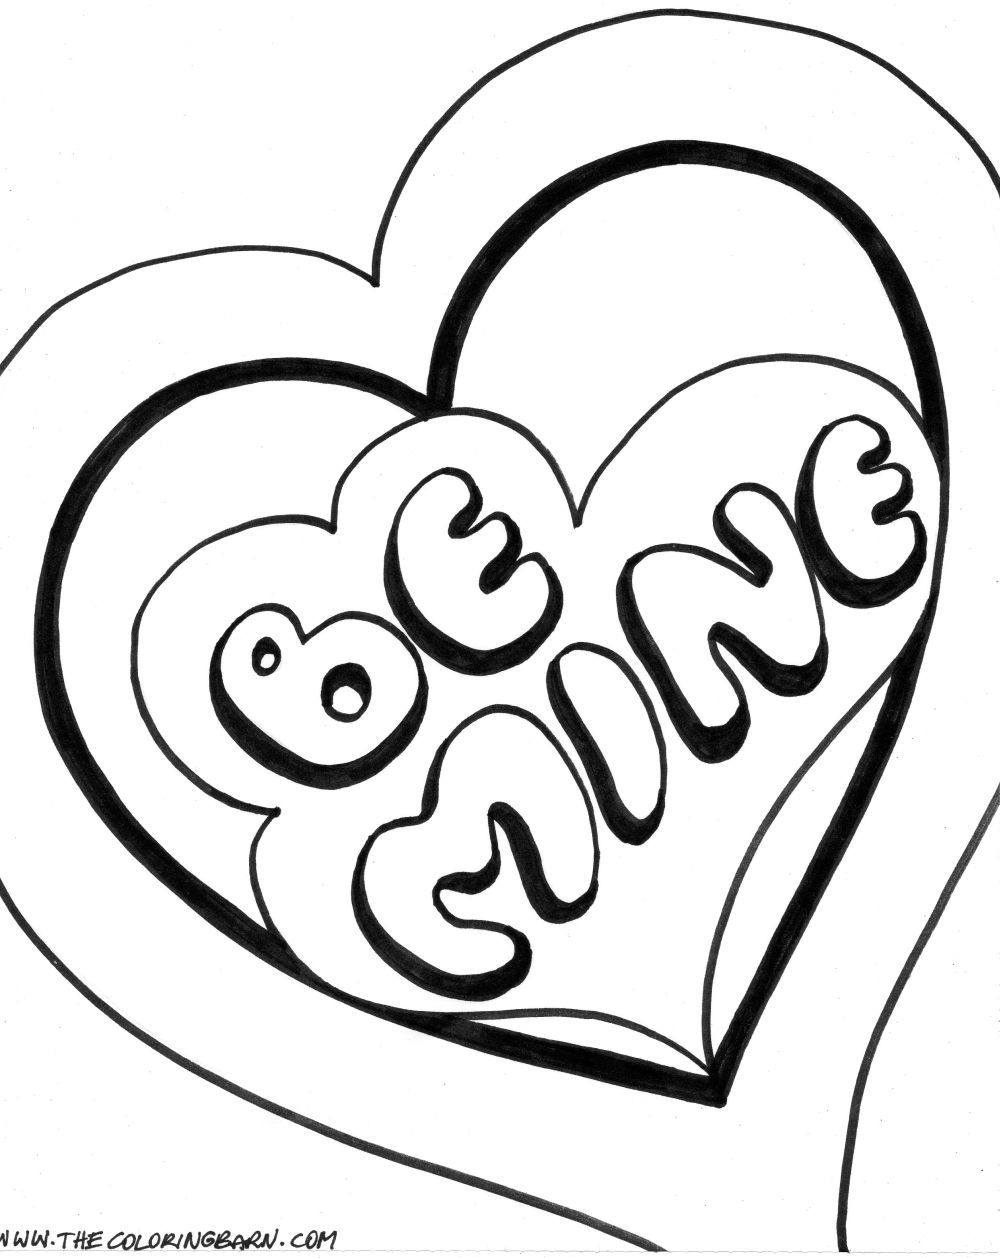 Superb Kids Valentine Coloring Pages 86 Cute Valentine Coloring Pages